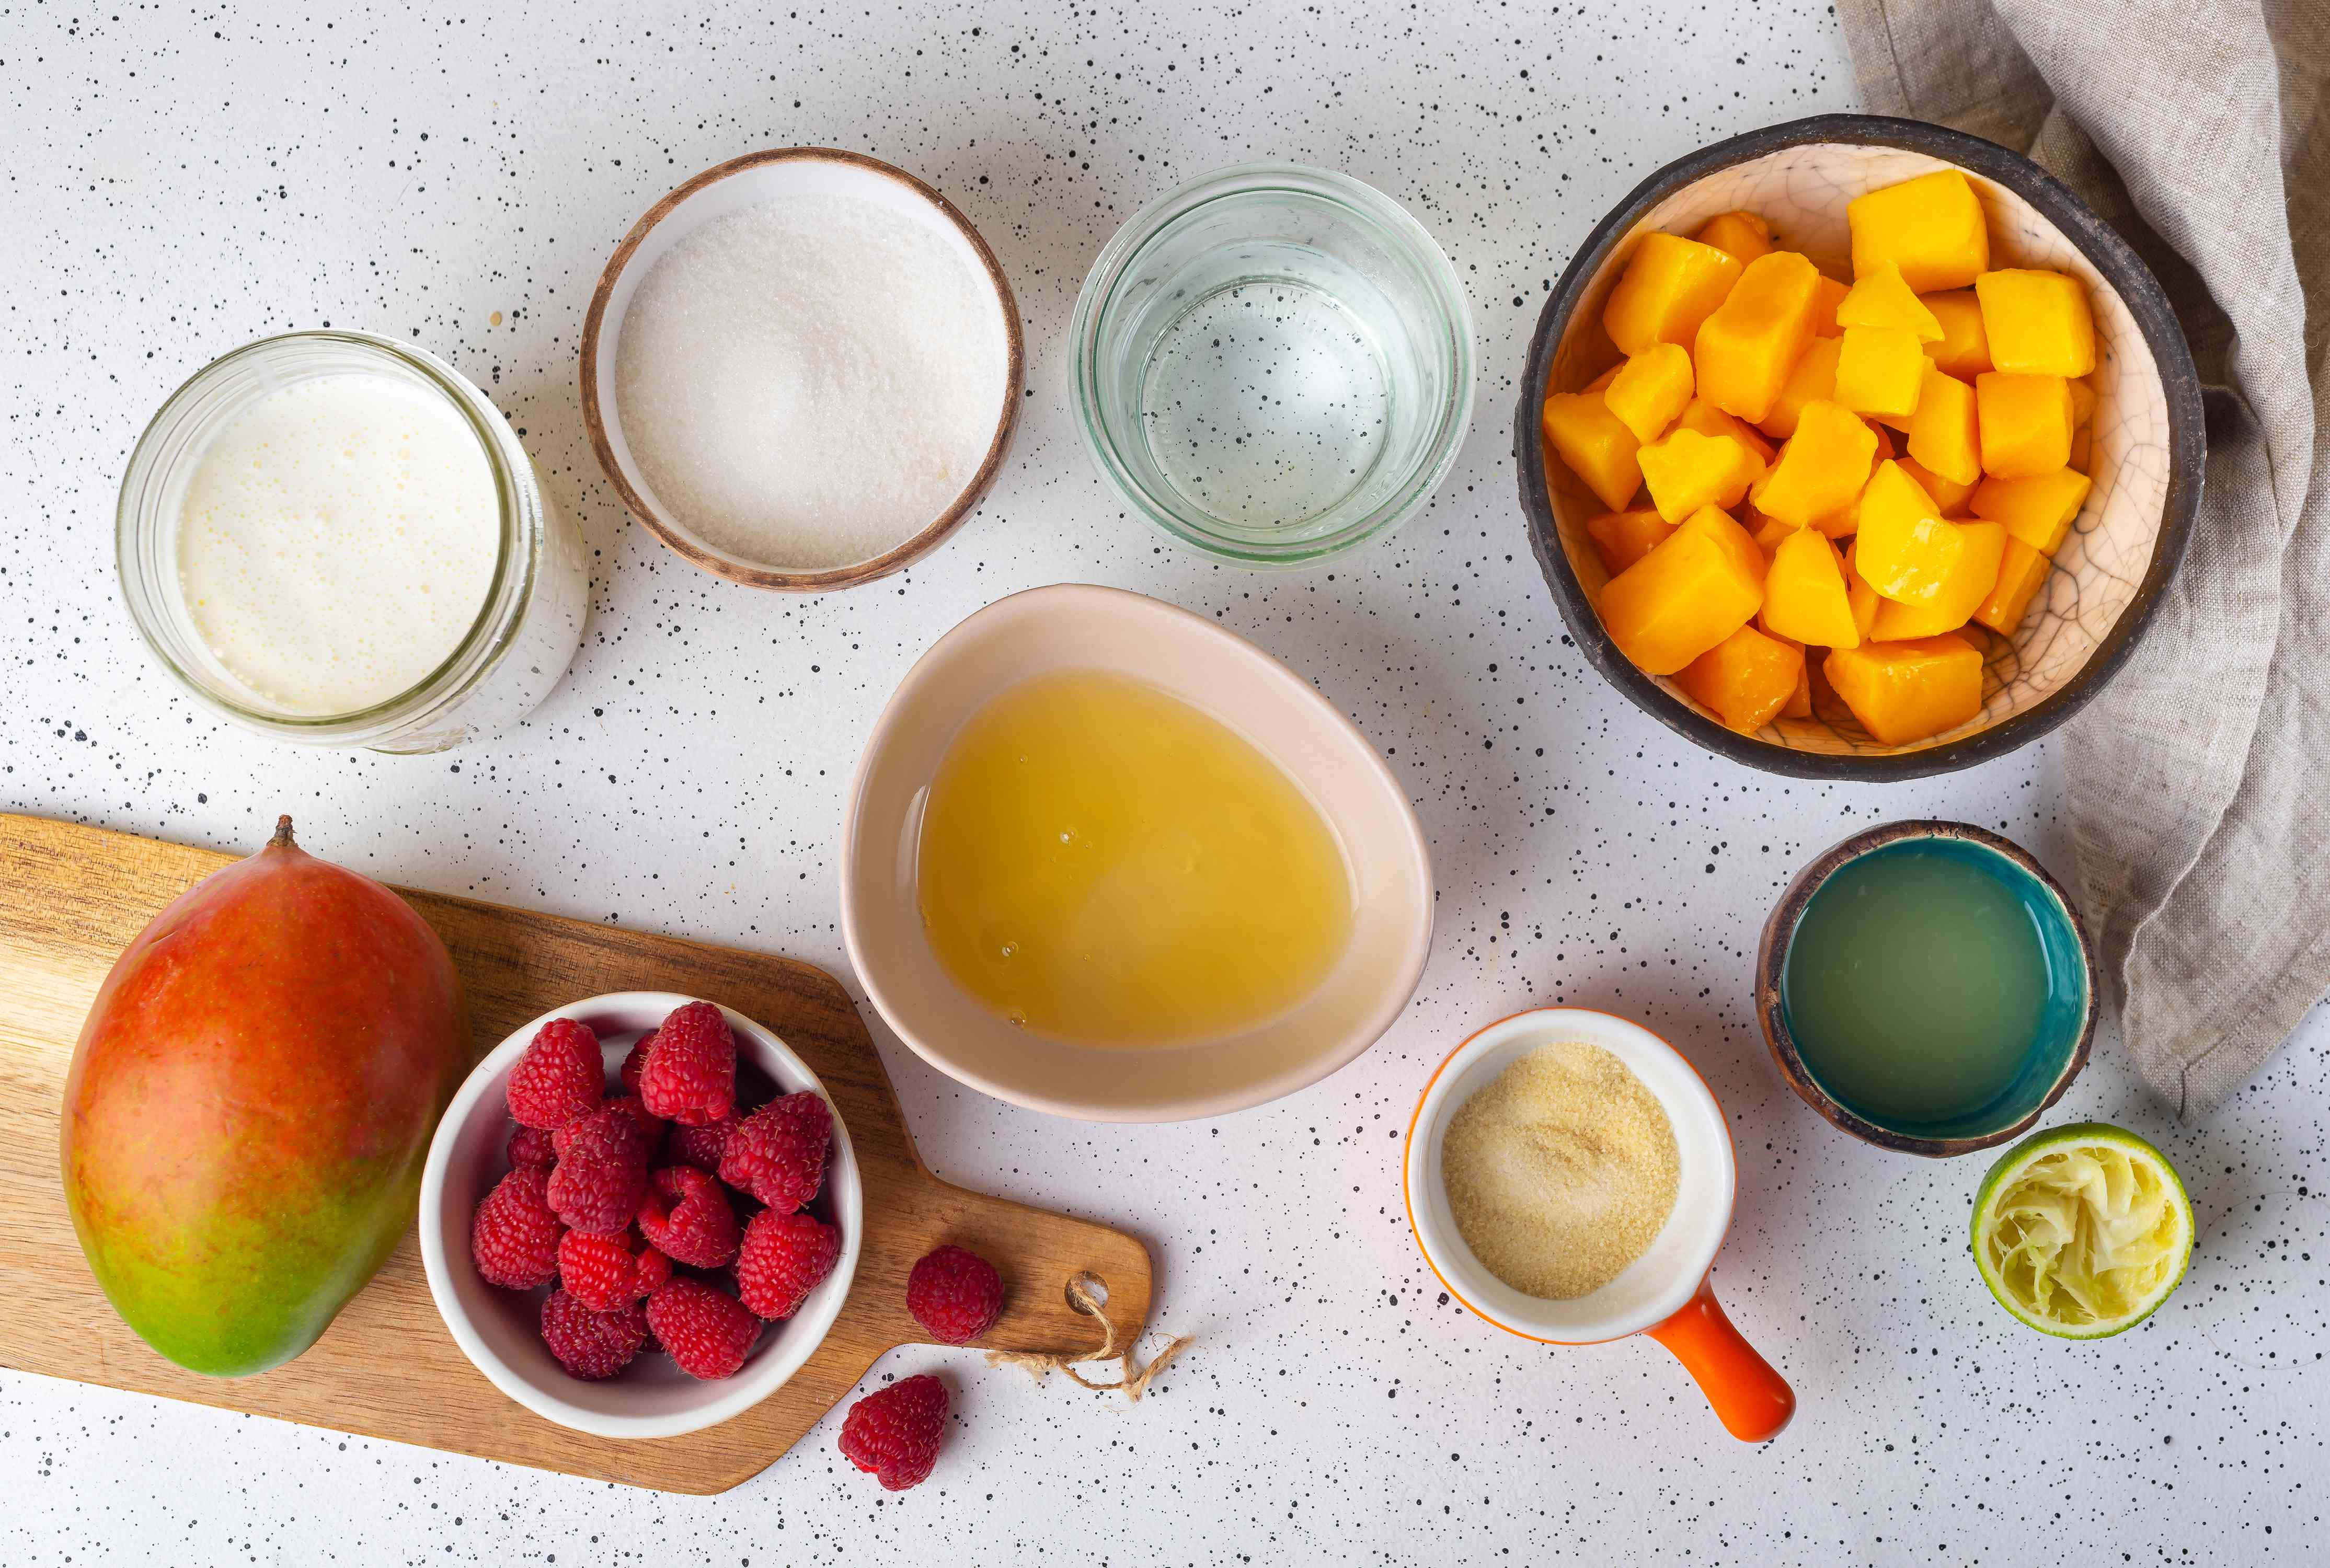 Ingredients for mousse